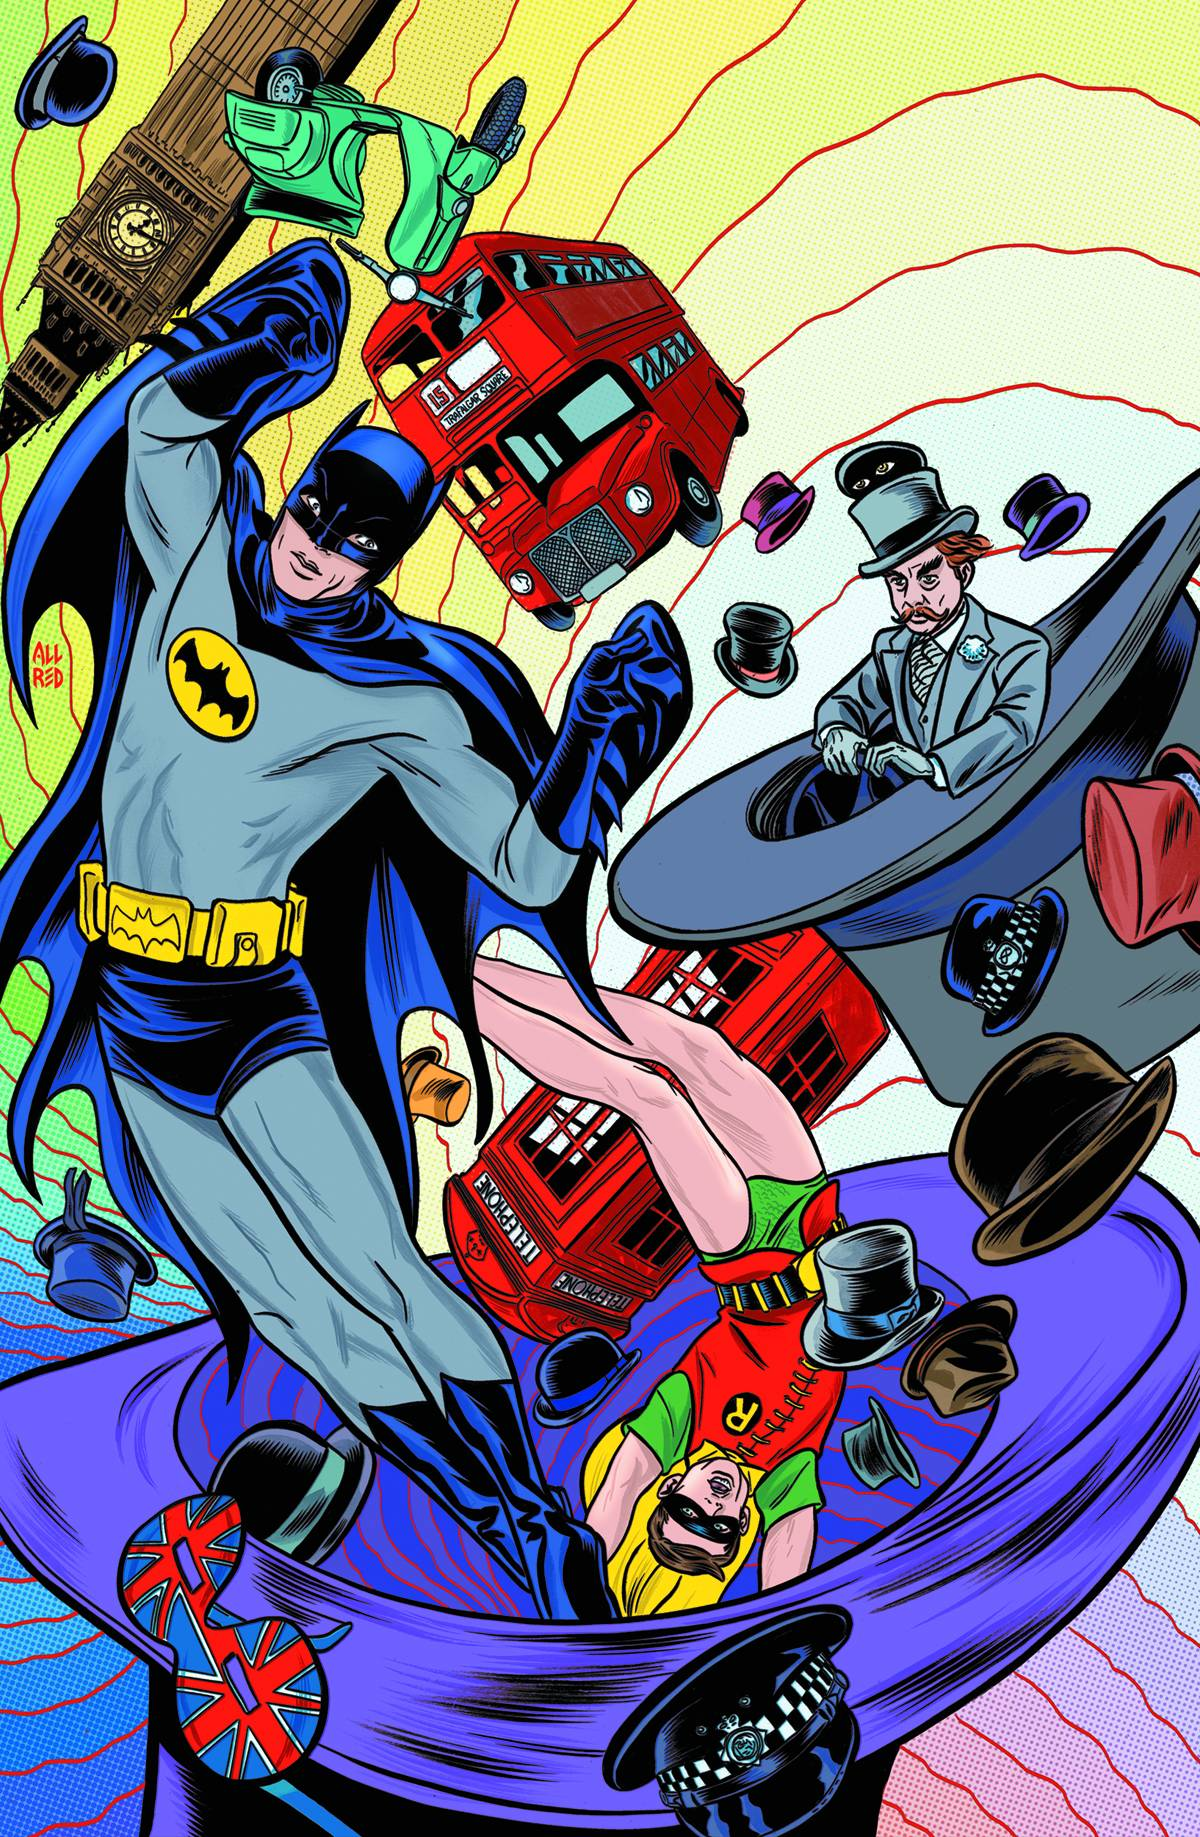 Batman 66 Related Keywords & Suggestions - Batman 66 Long Tail Keywords